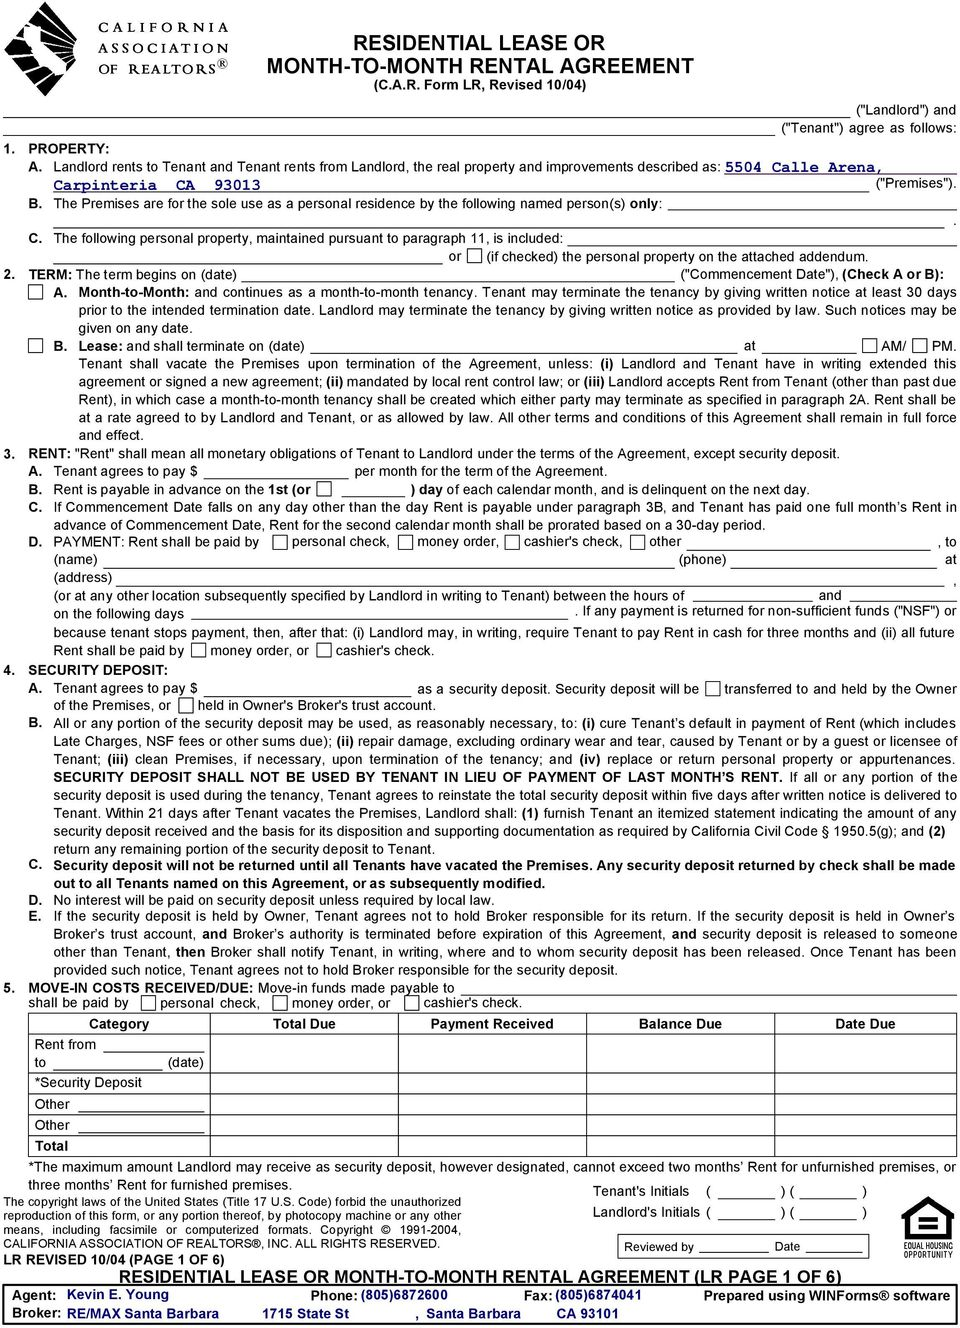 Residential Lease Or Month To Month Rental Agreement Pdf